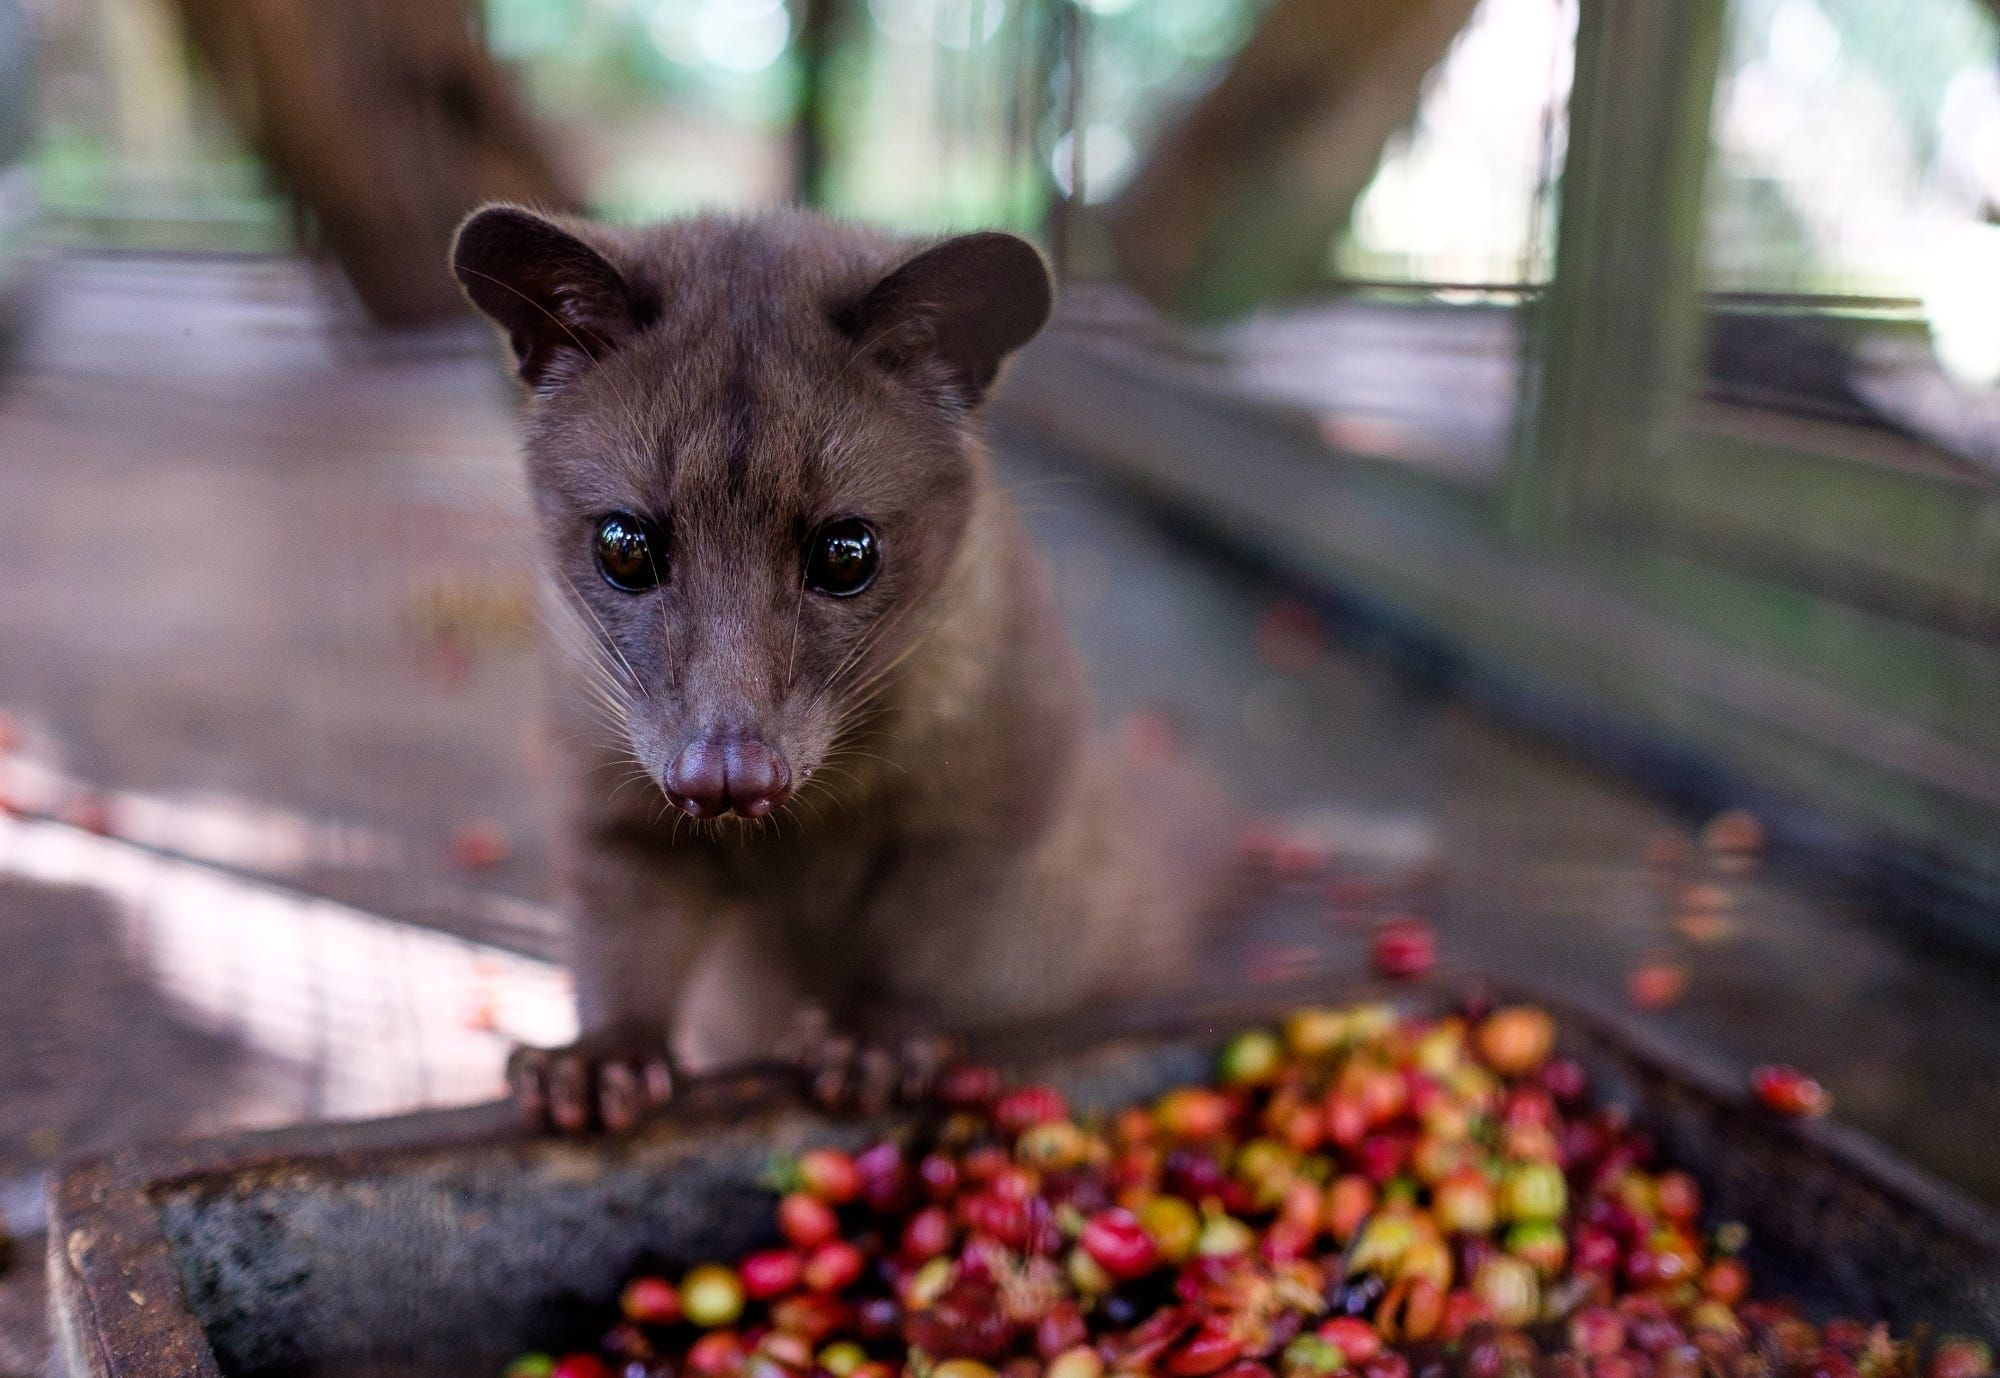 Asian palm civet, known to eat and defecate coffee beans